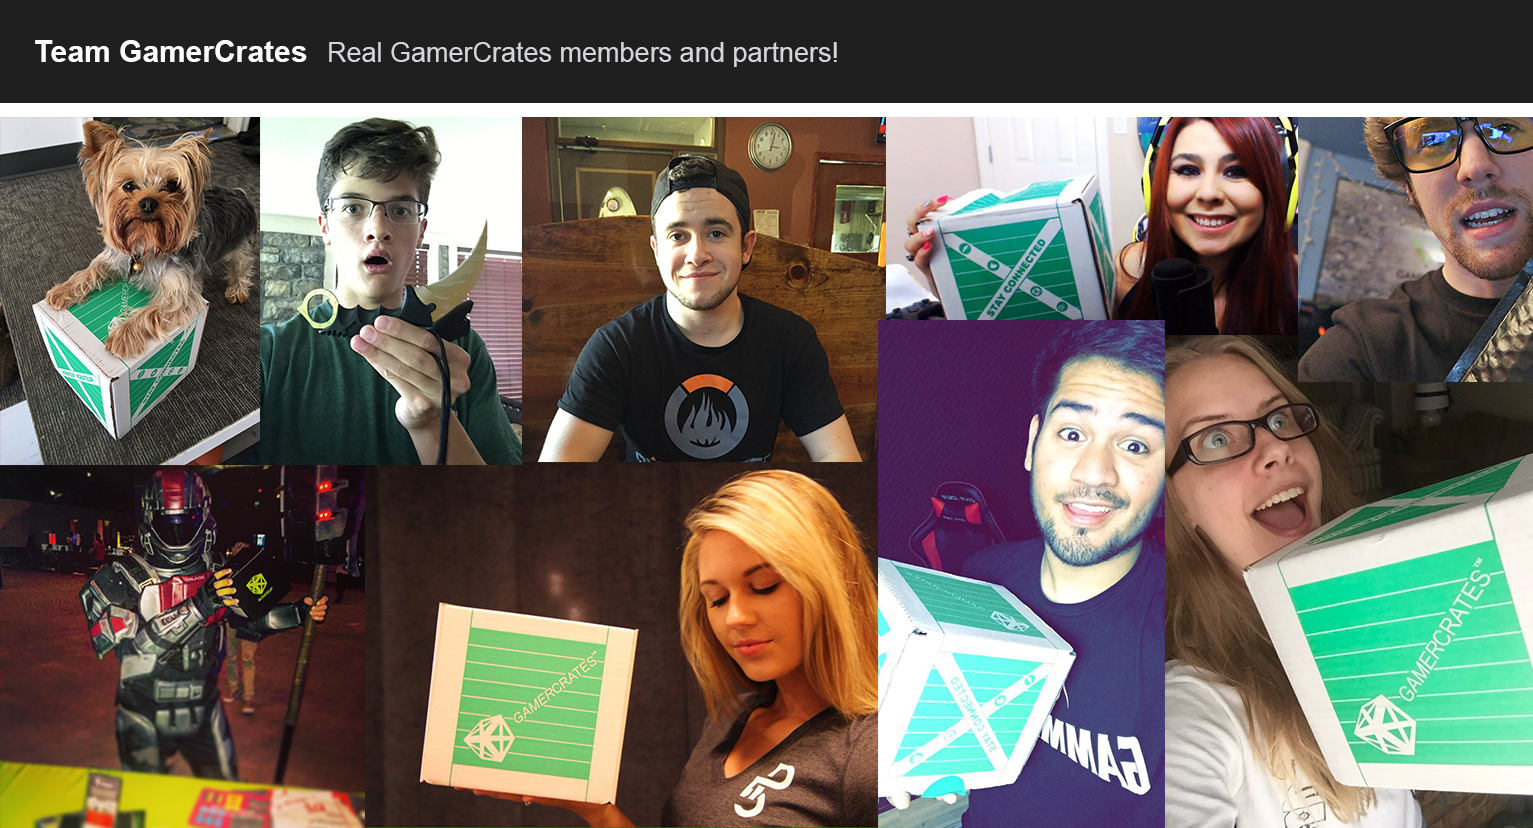 GamerCrates, Monthly eSports & Gaming Subscription Box, Jack the CEO, SoaR Butters, Platinum 5 Studios